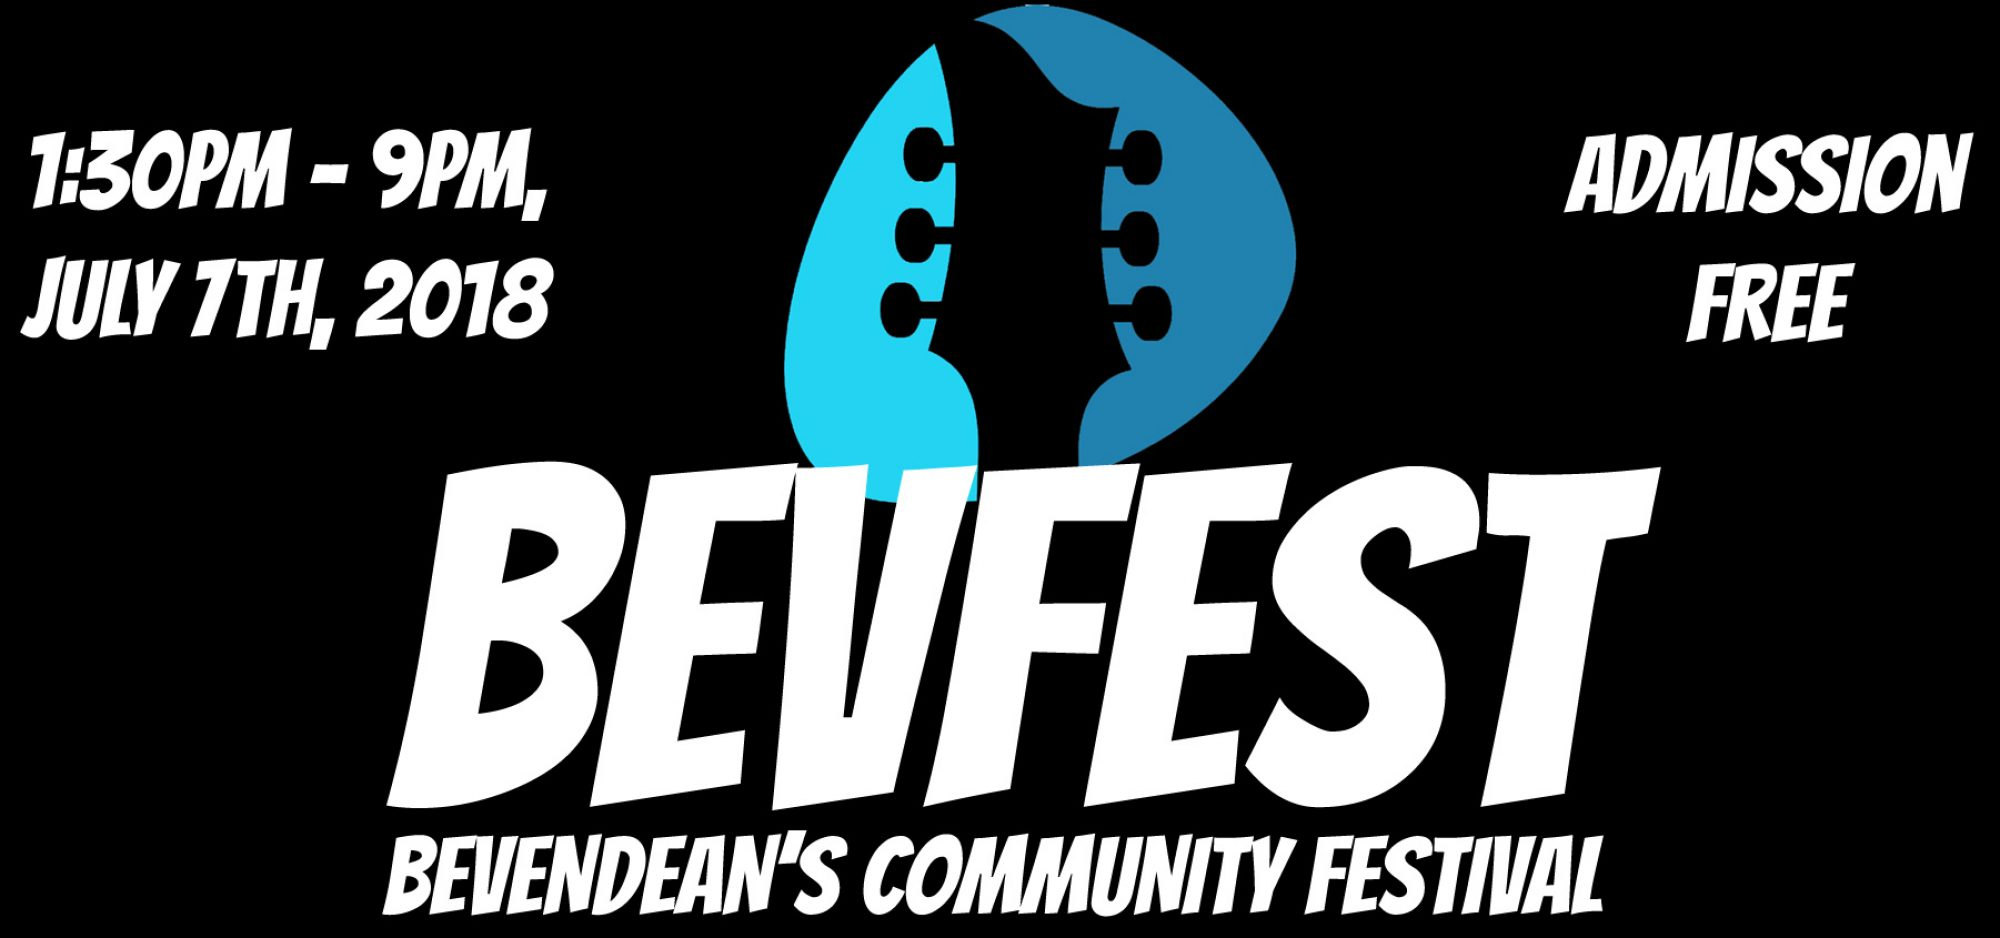 BevFest 7th July 2018